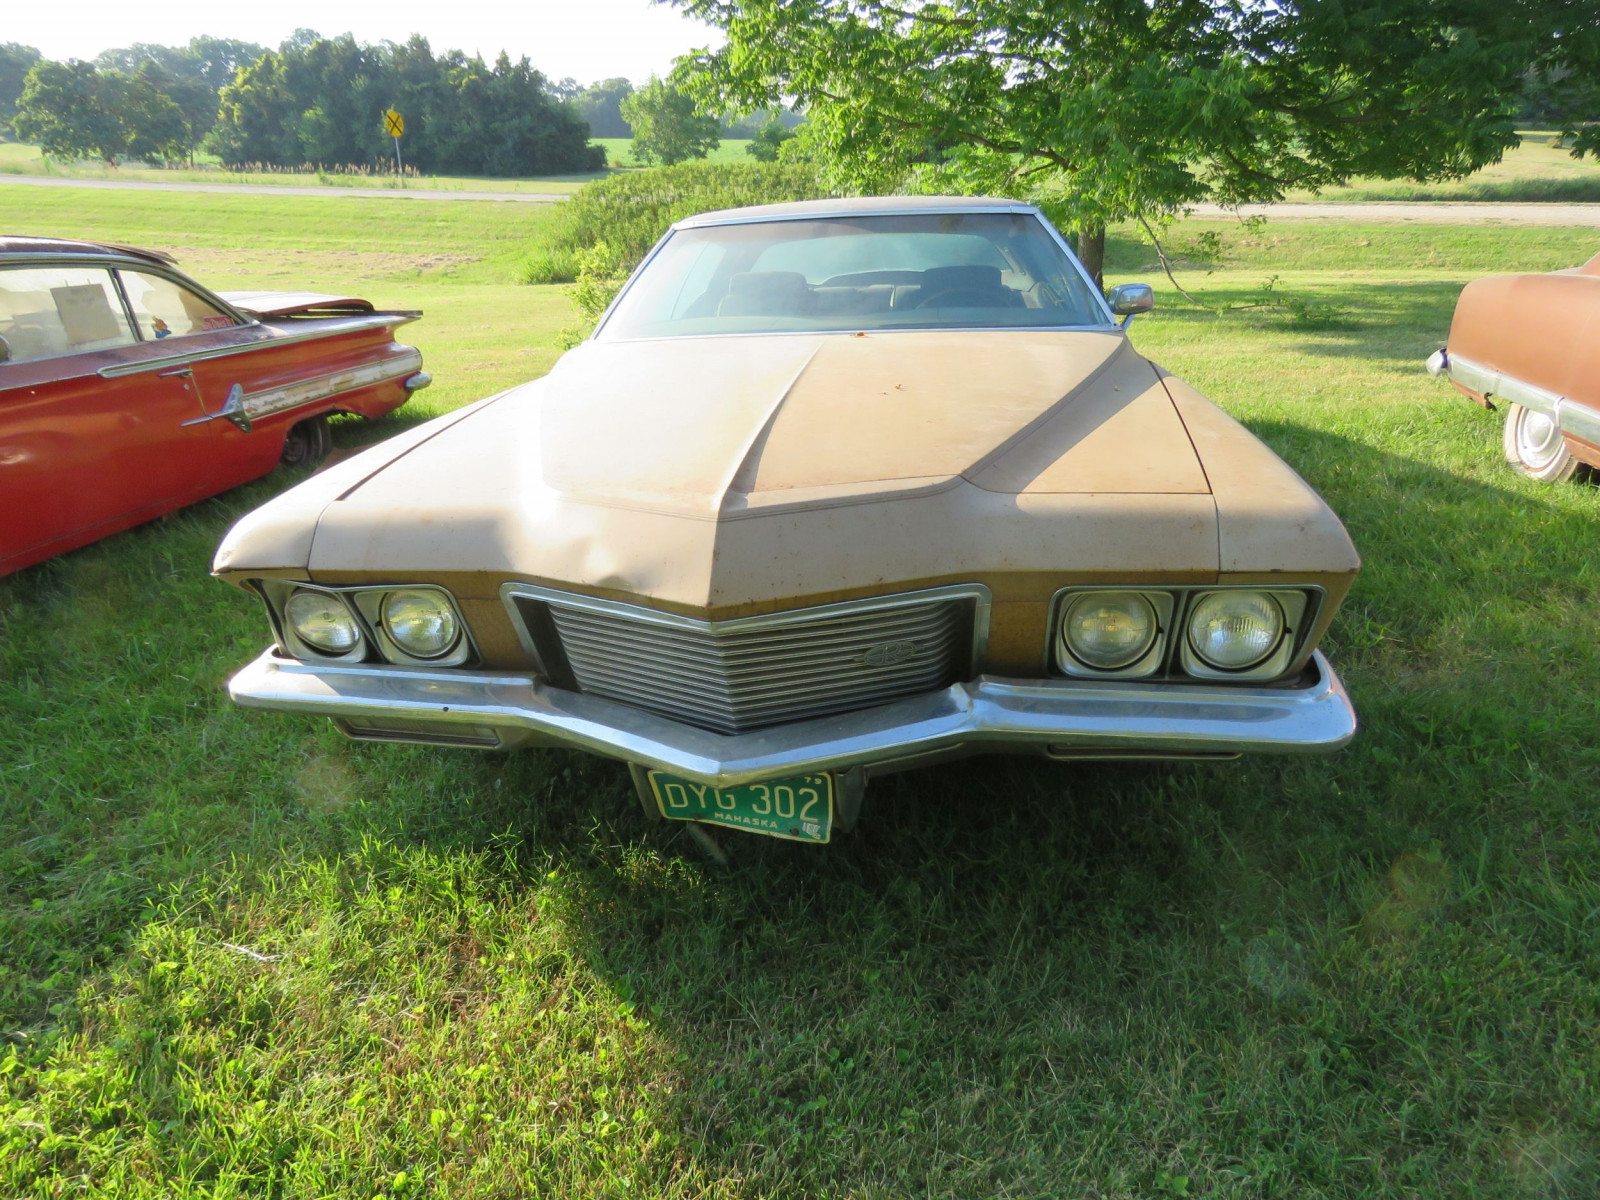 1971 Buick Boat tail Riviera - Image 2